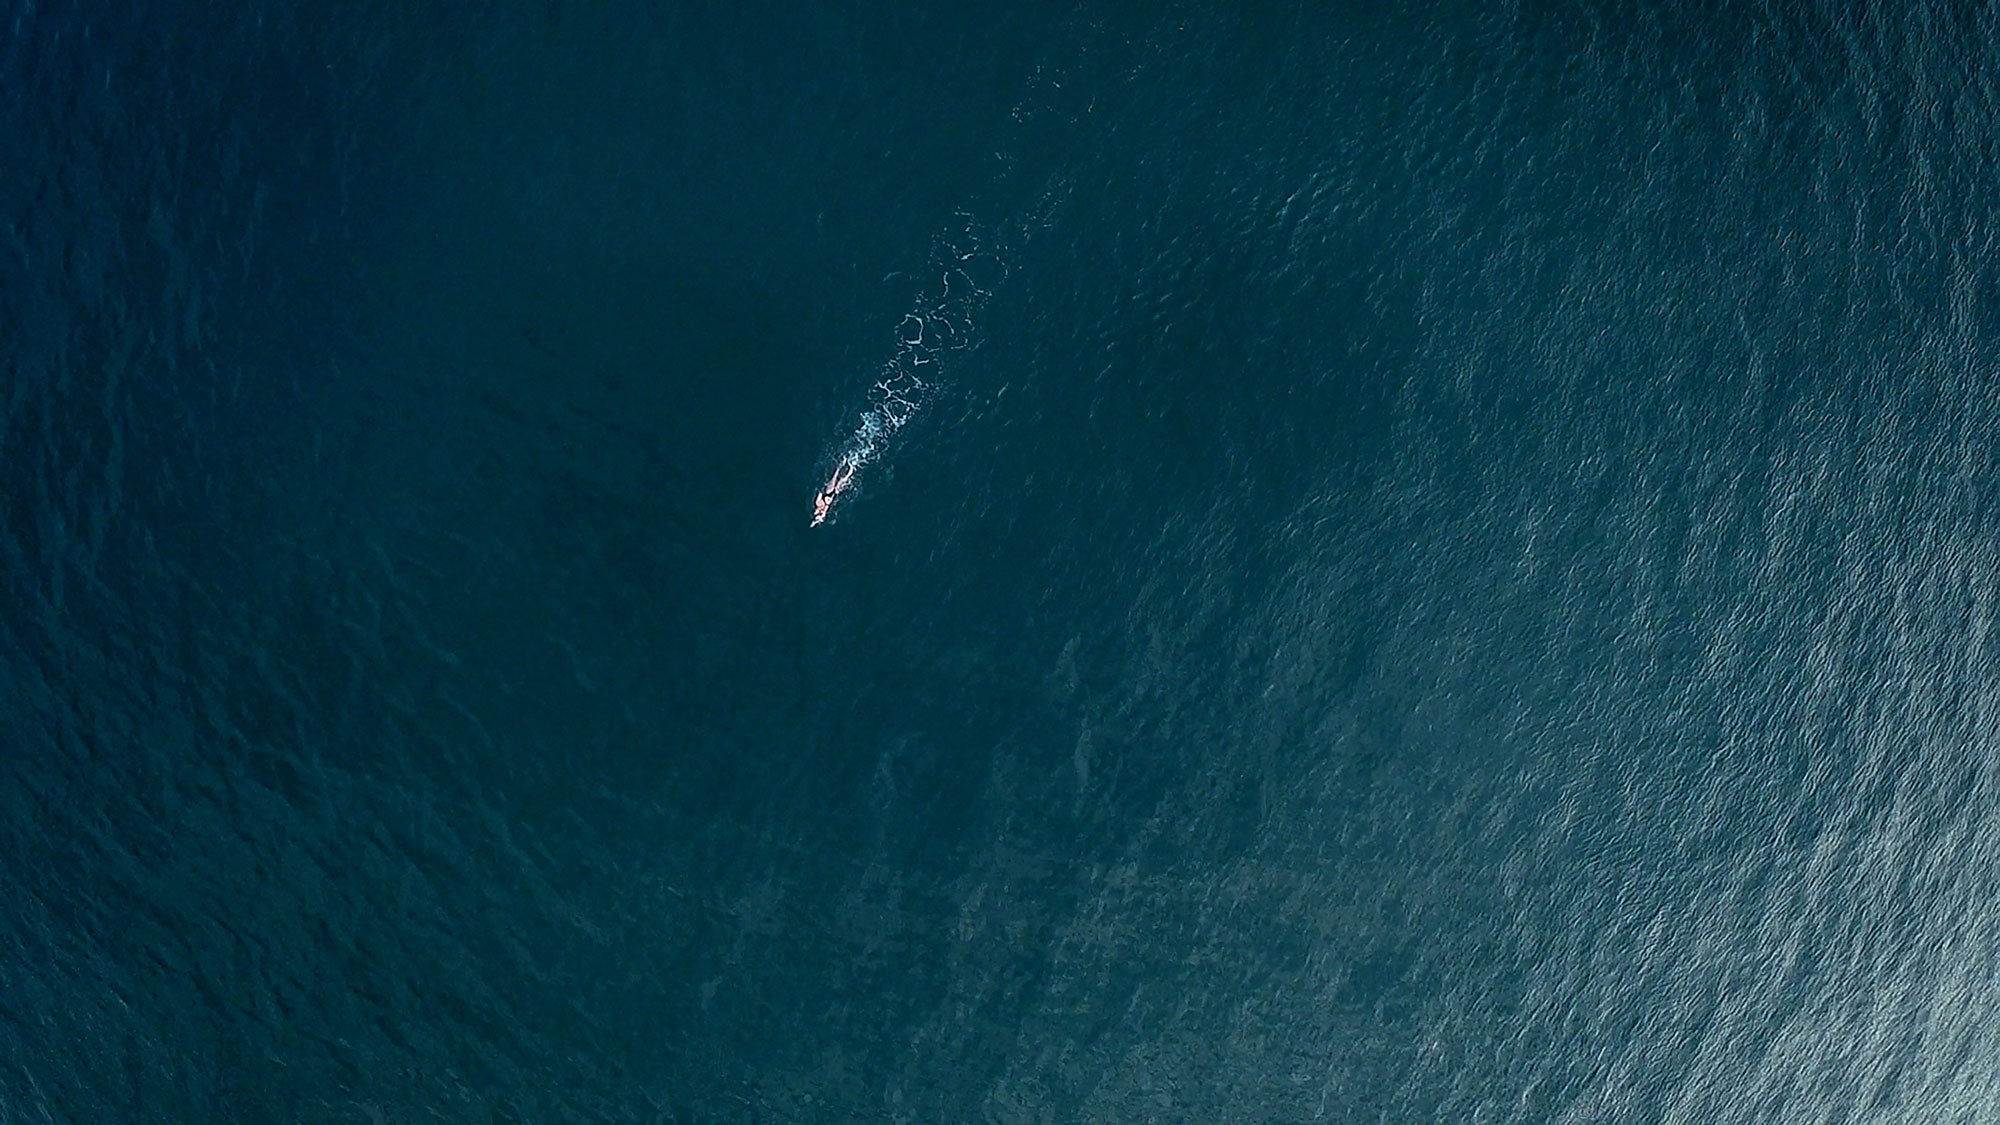 Arial view of Beth French swimming in open water as part of the Oceans 7 challenge